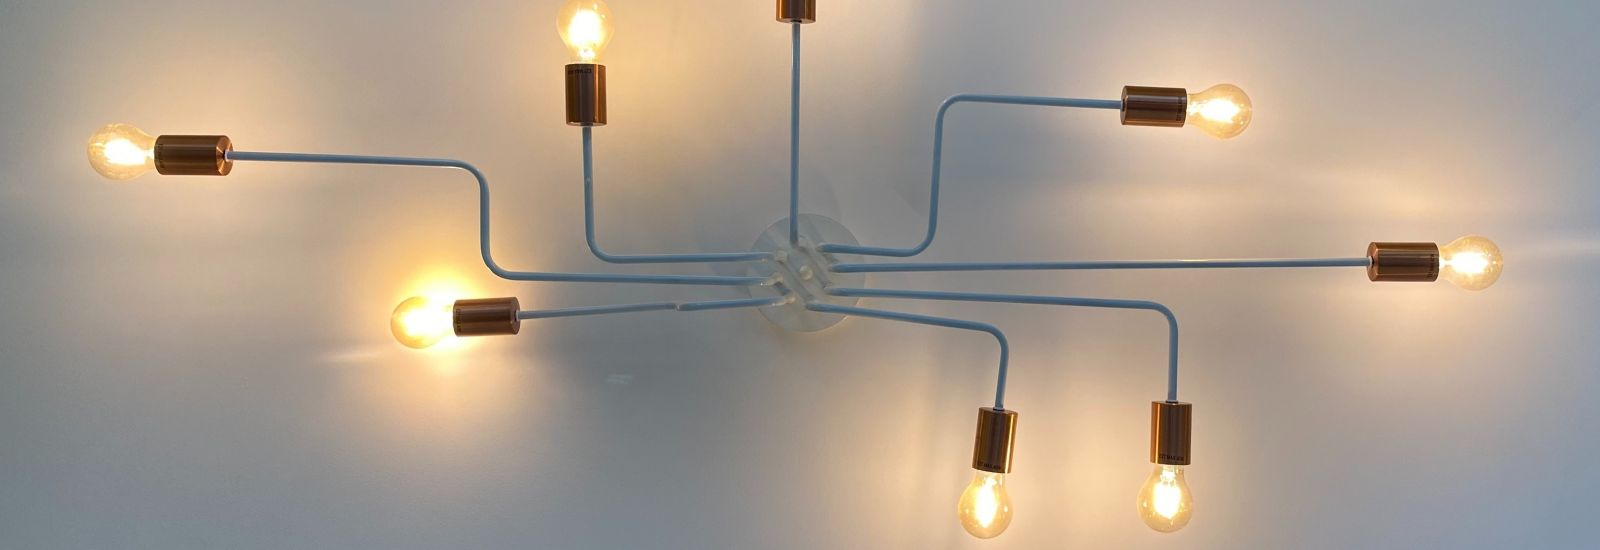 Eight lights bulbs connected from the same power source spread out in different directions